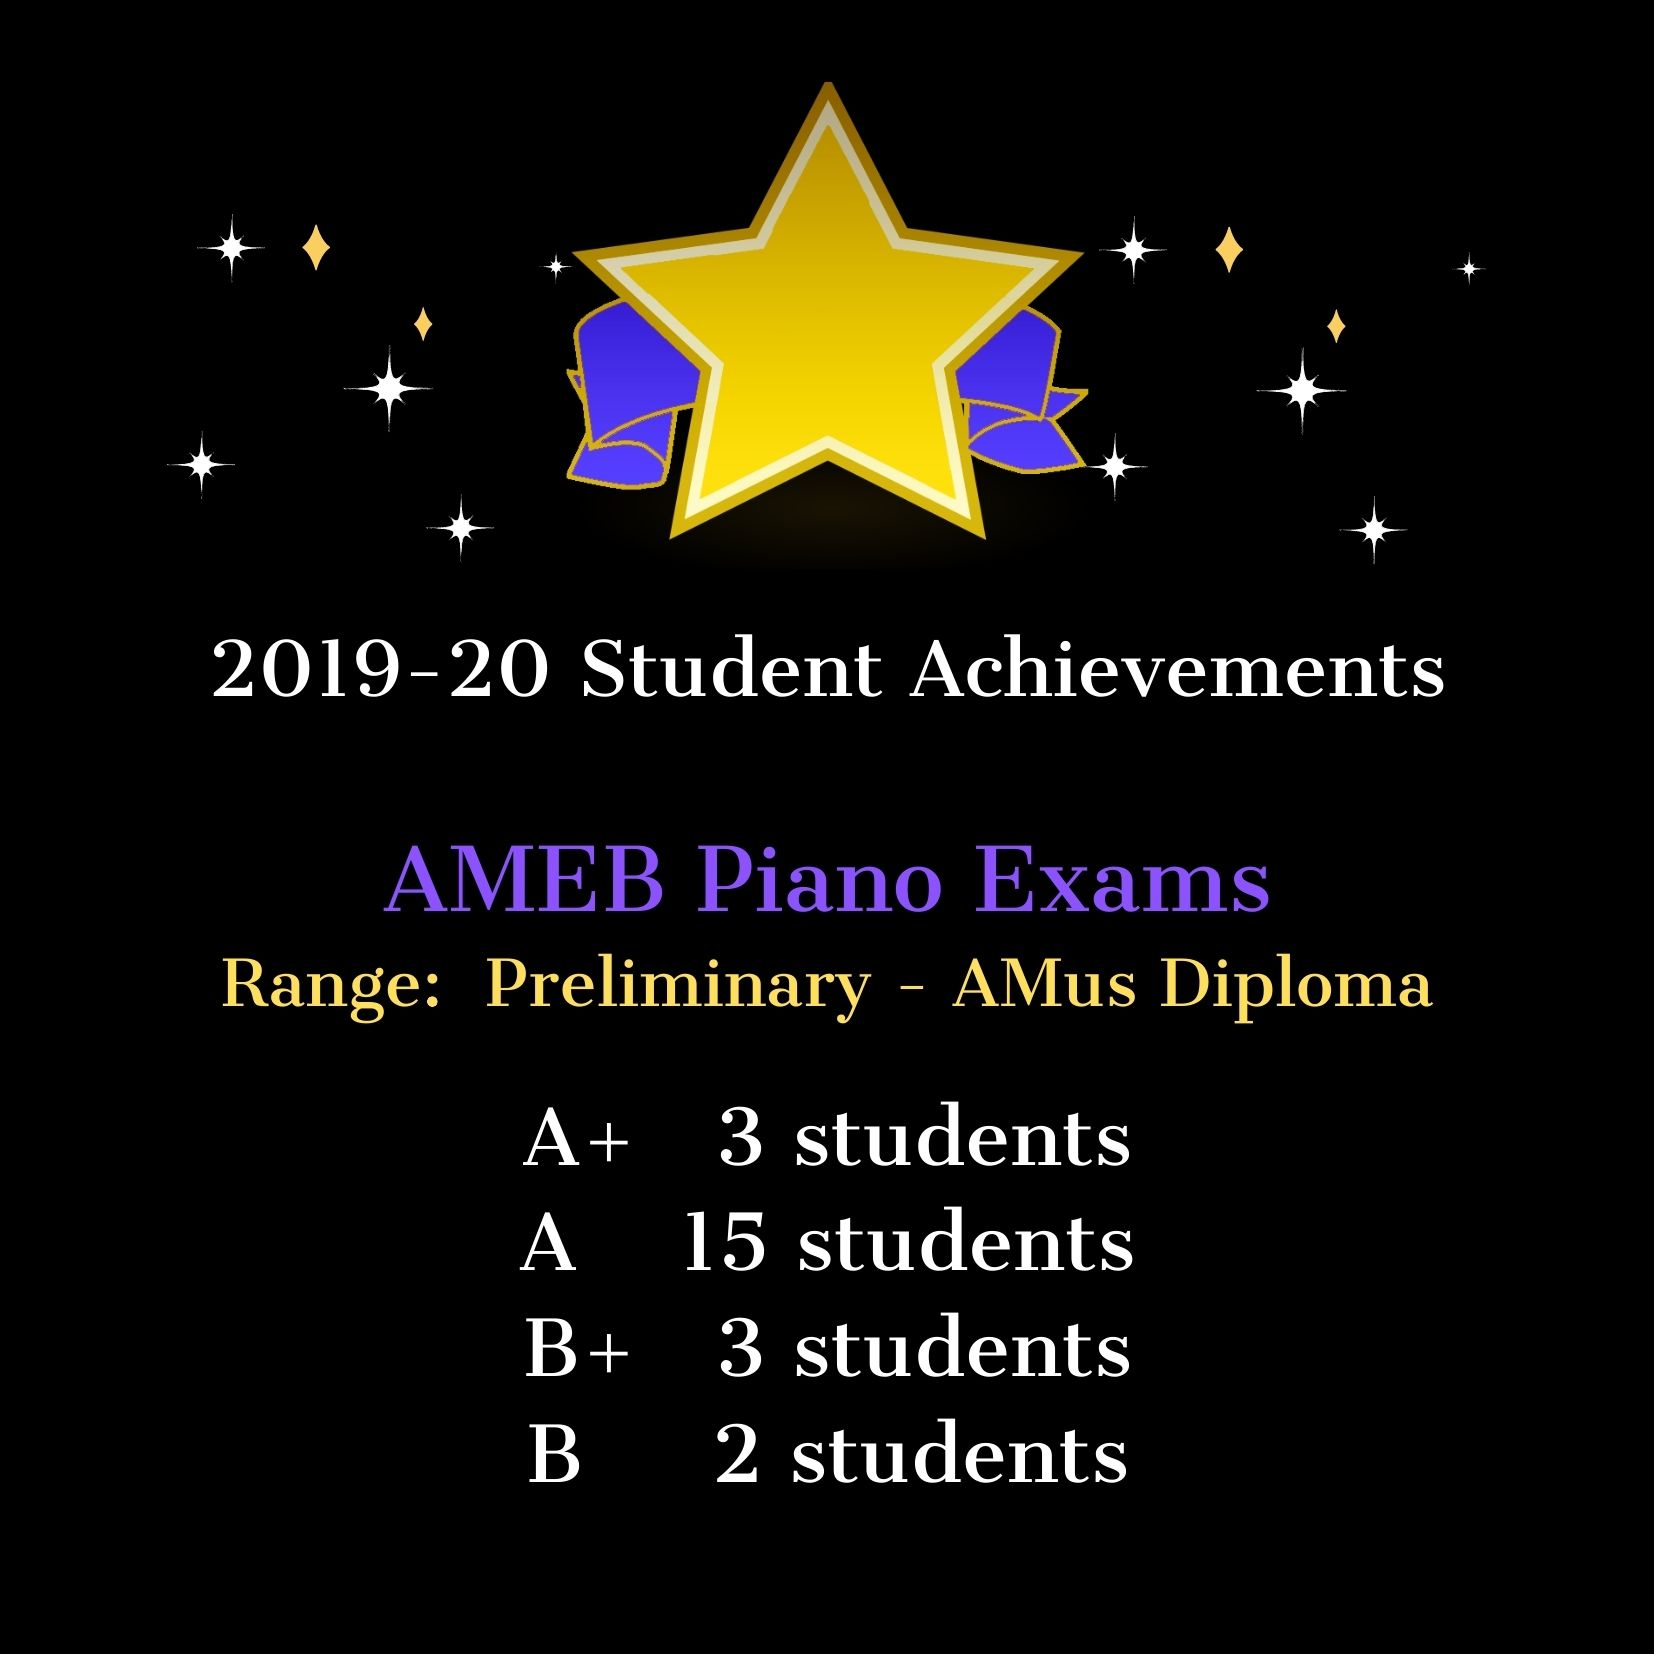 2020 Achievement AMEB Diploma